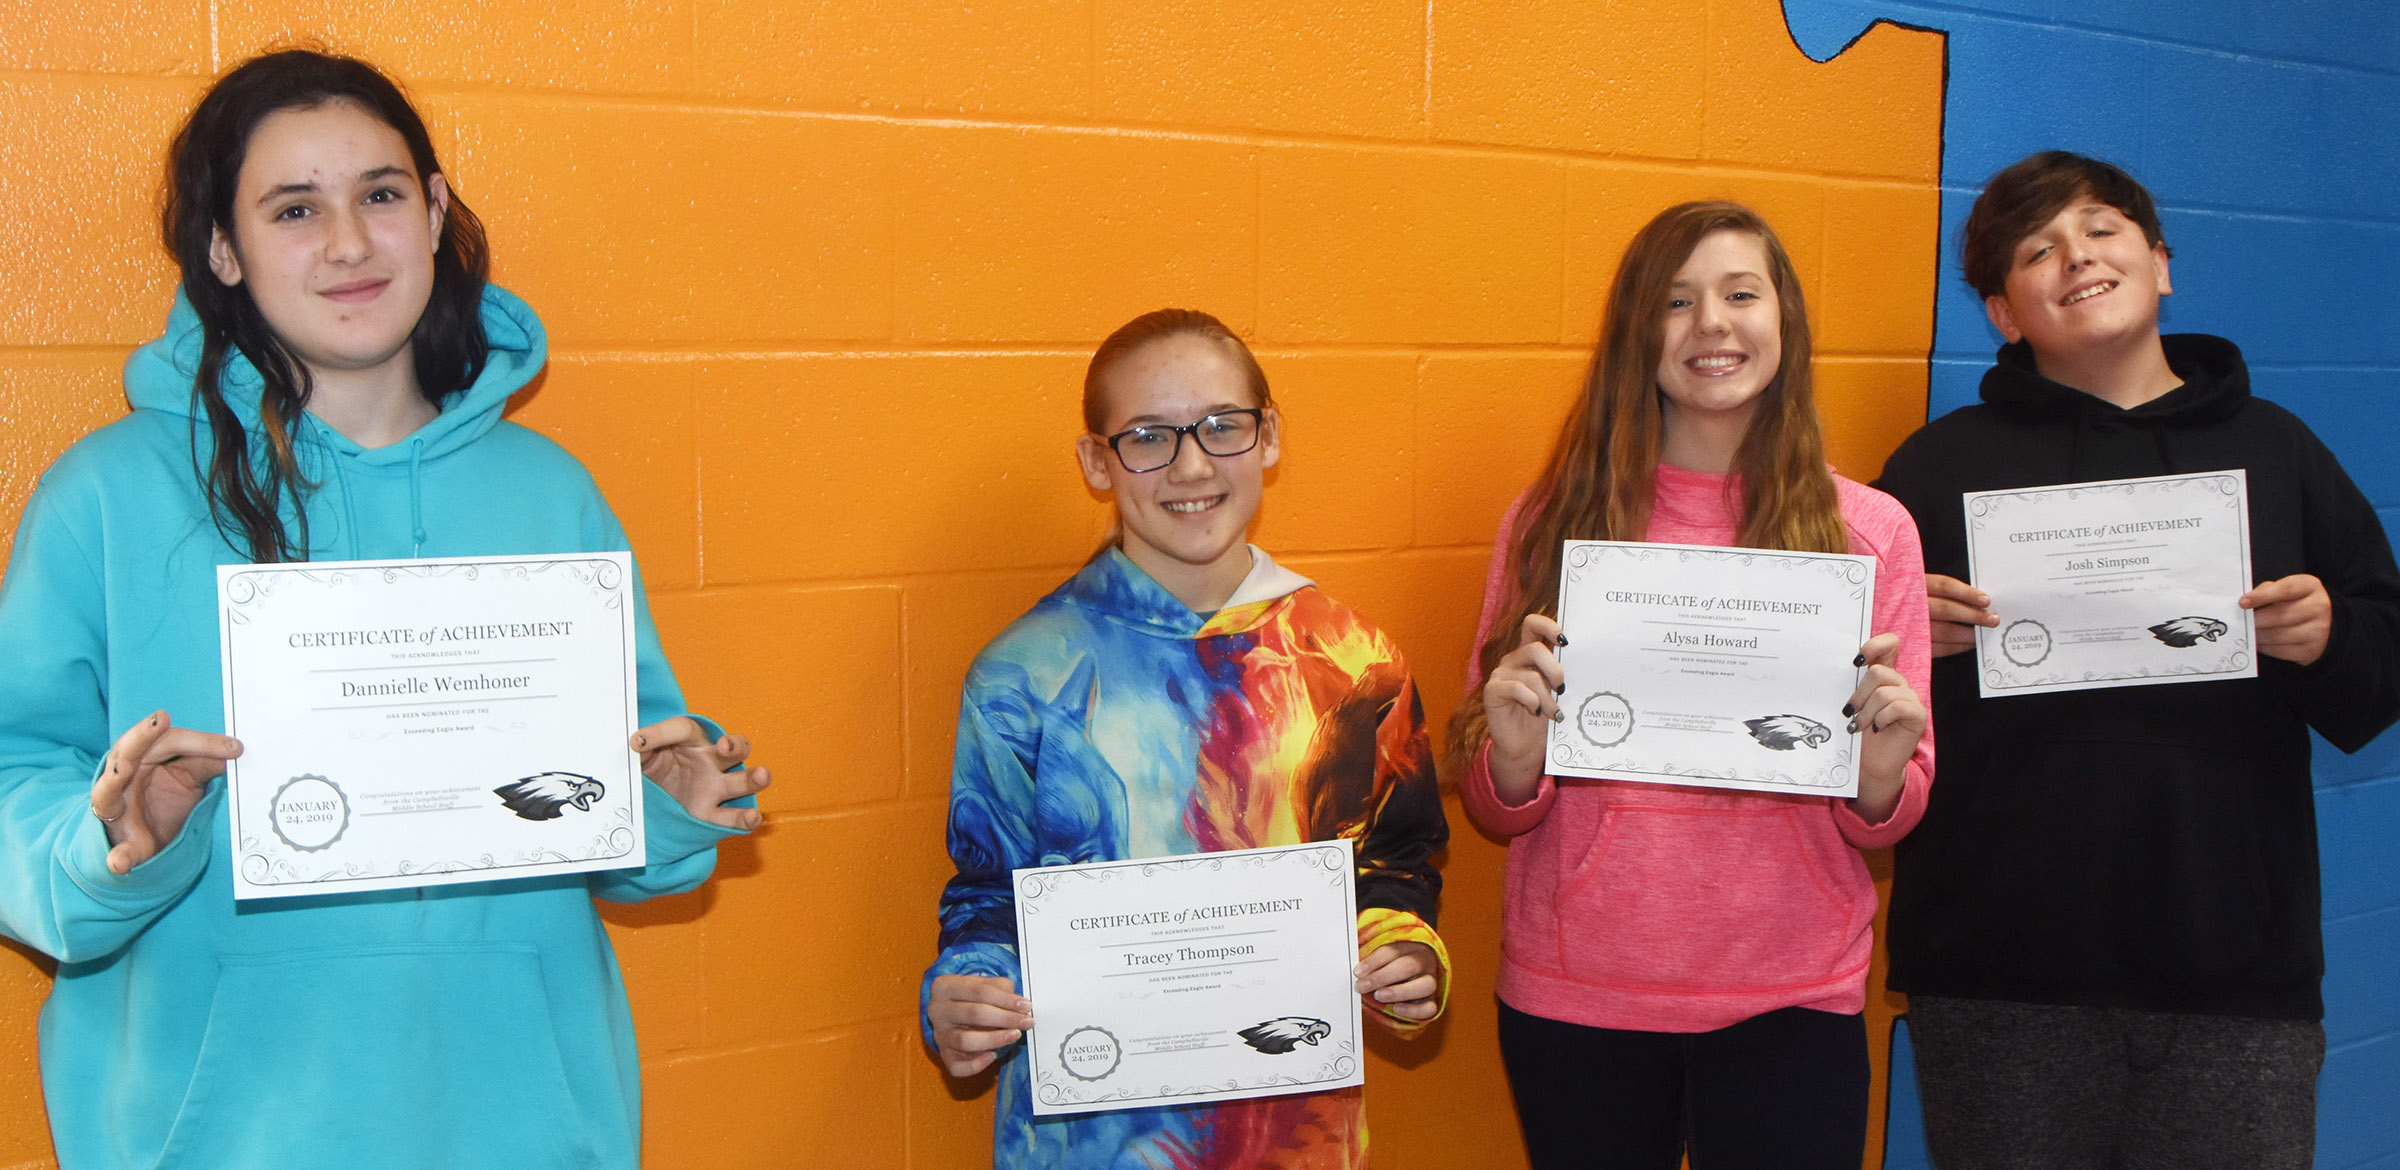 CMS Exceeding Eagles for the week of Jan. 21 are, from left, sixth-grader Dannielle Wemhoner, seventh-grader Tracey Thompson and eighth-graders Alysa Howard and Josh Simpson. Absent from the photo are sixth-grader Mason Fisher and seventh-grader Jordan Gabehart.